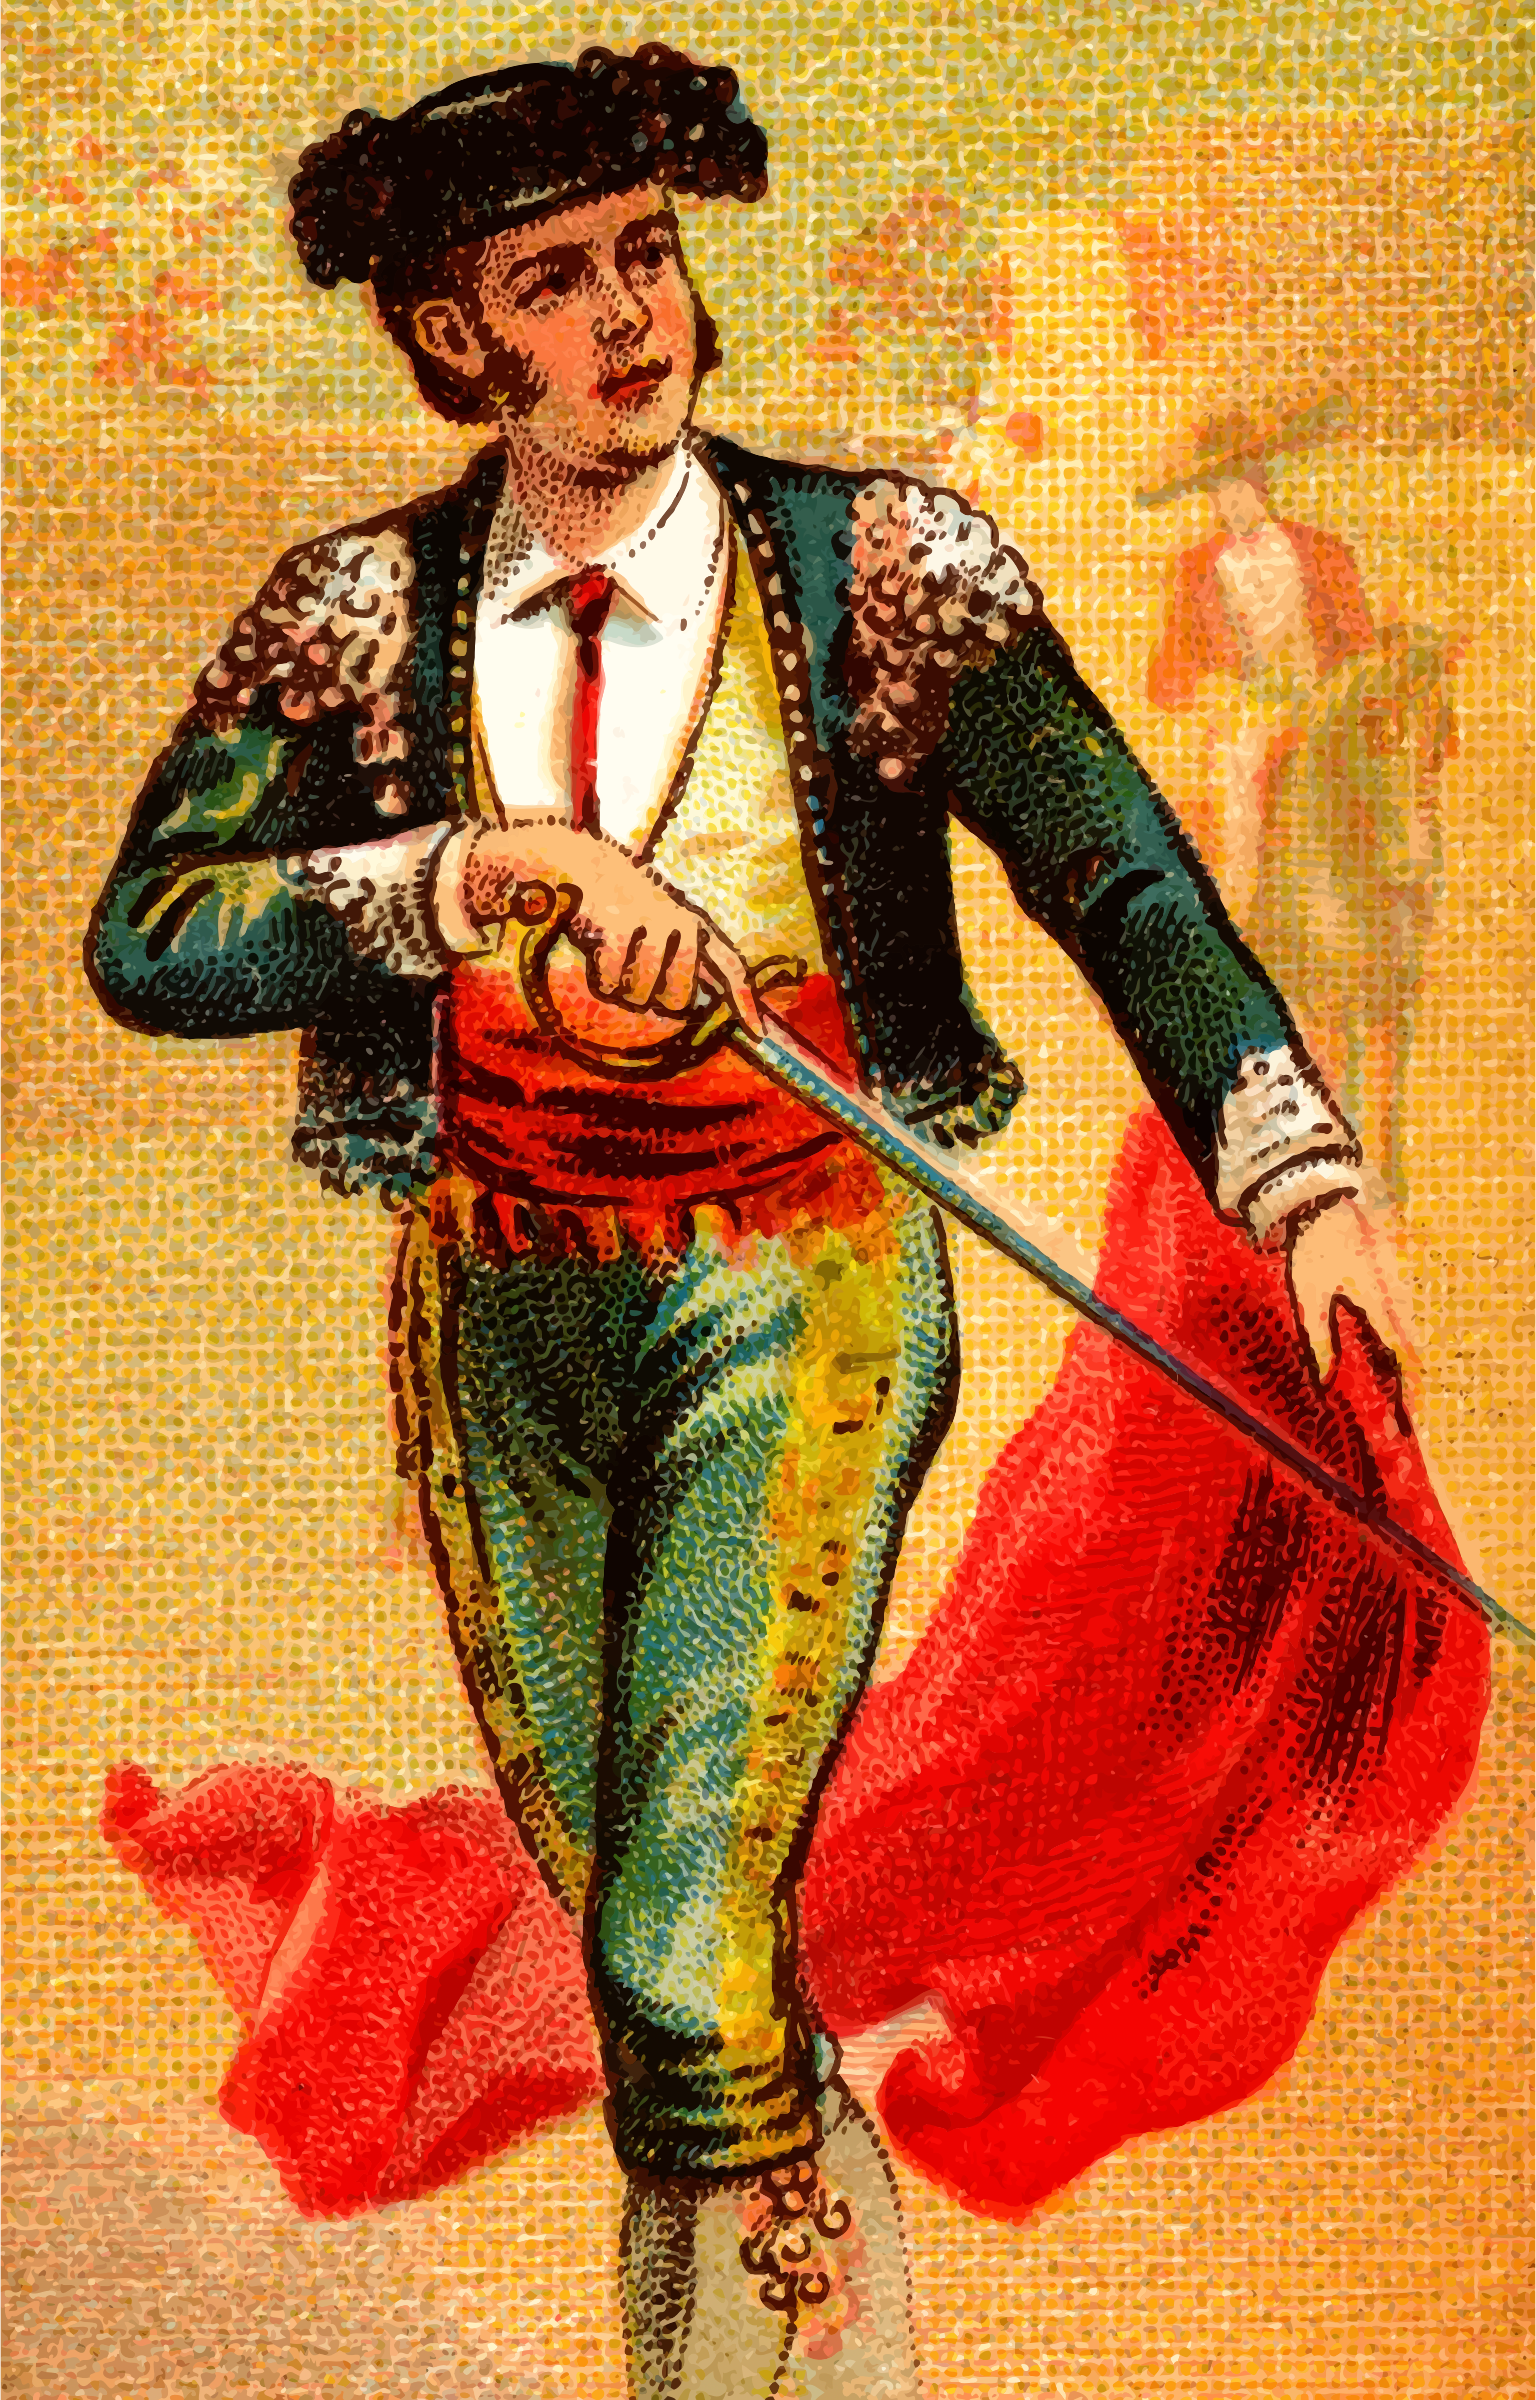 Cigarette card - Bullfighter's Sword by Firkin